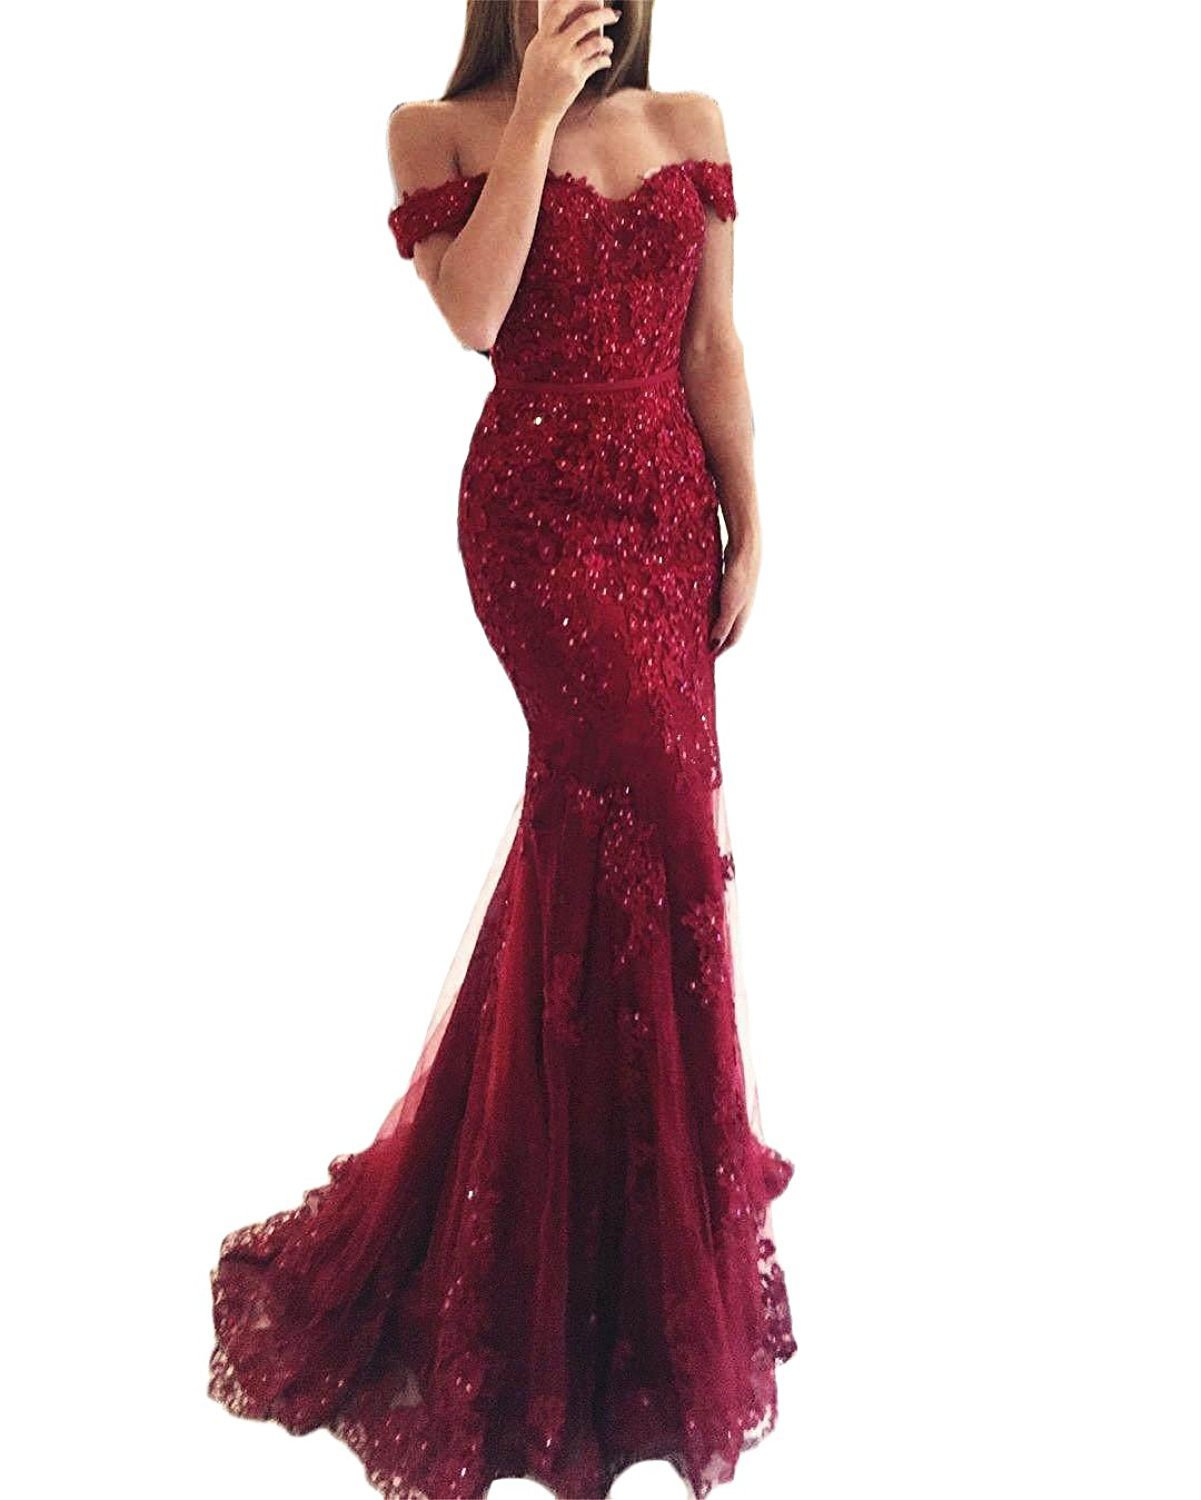 WuliDress Women's Off The Shoulder Lace Evening Prom Dress Mermaid Style 2018 V Neck Ball Gown Burgundy Size 6